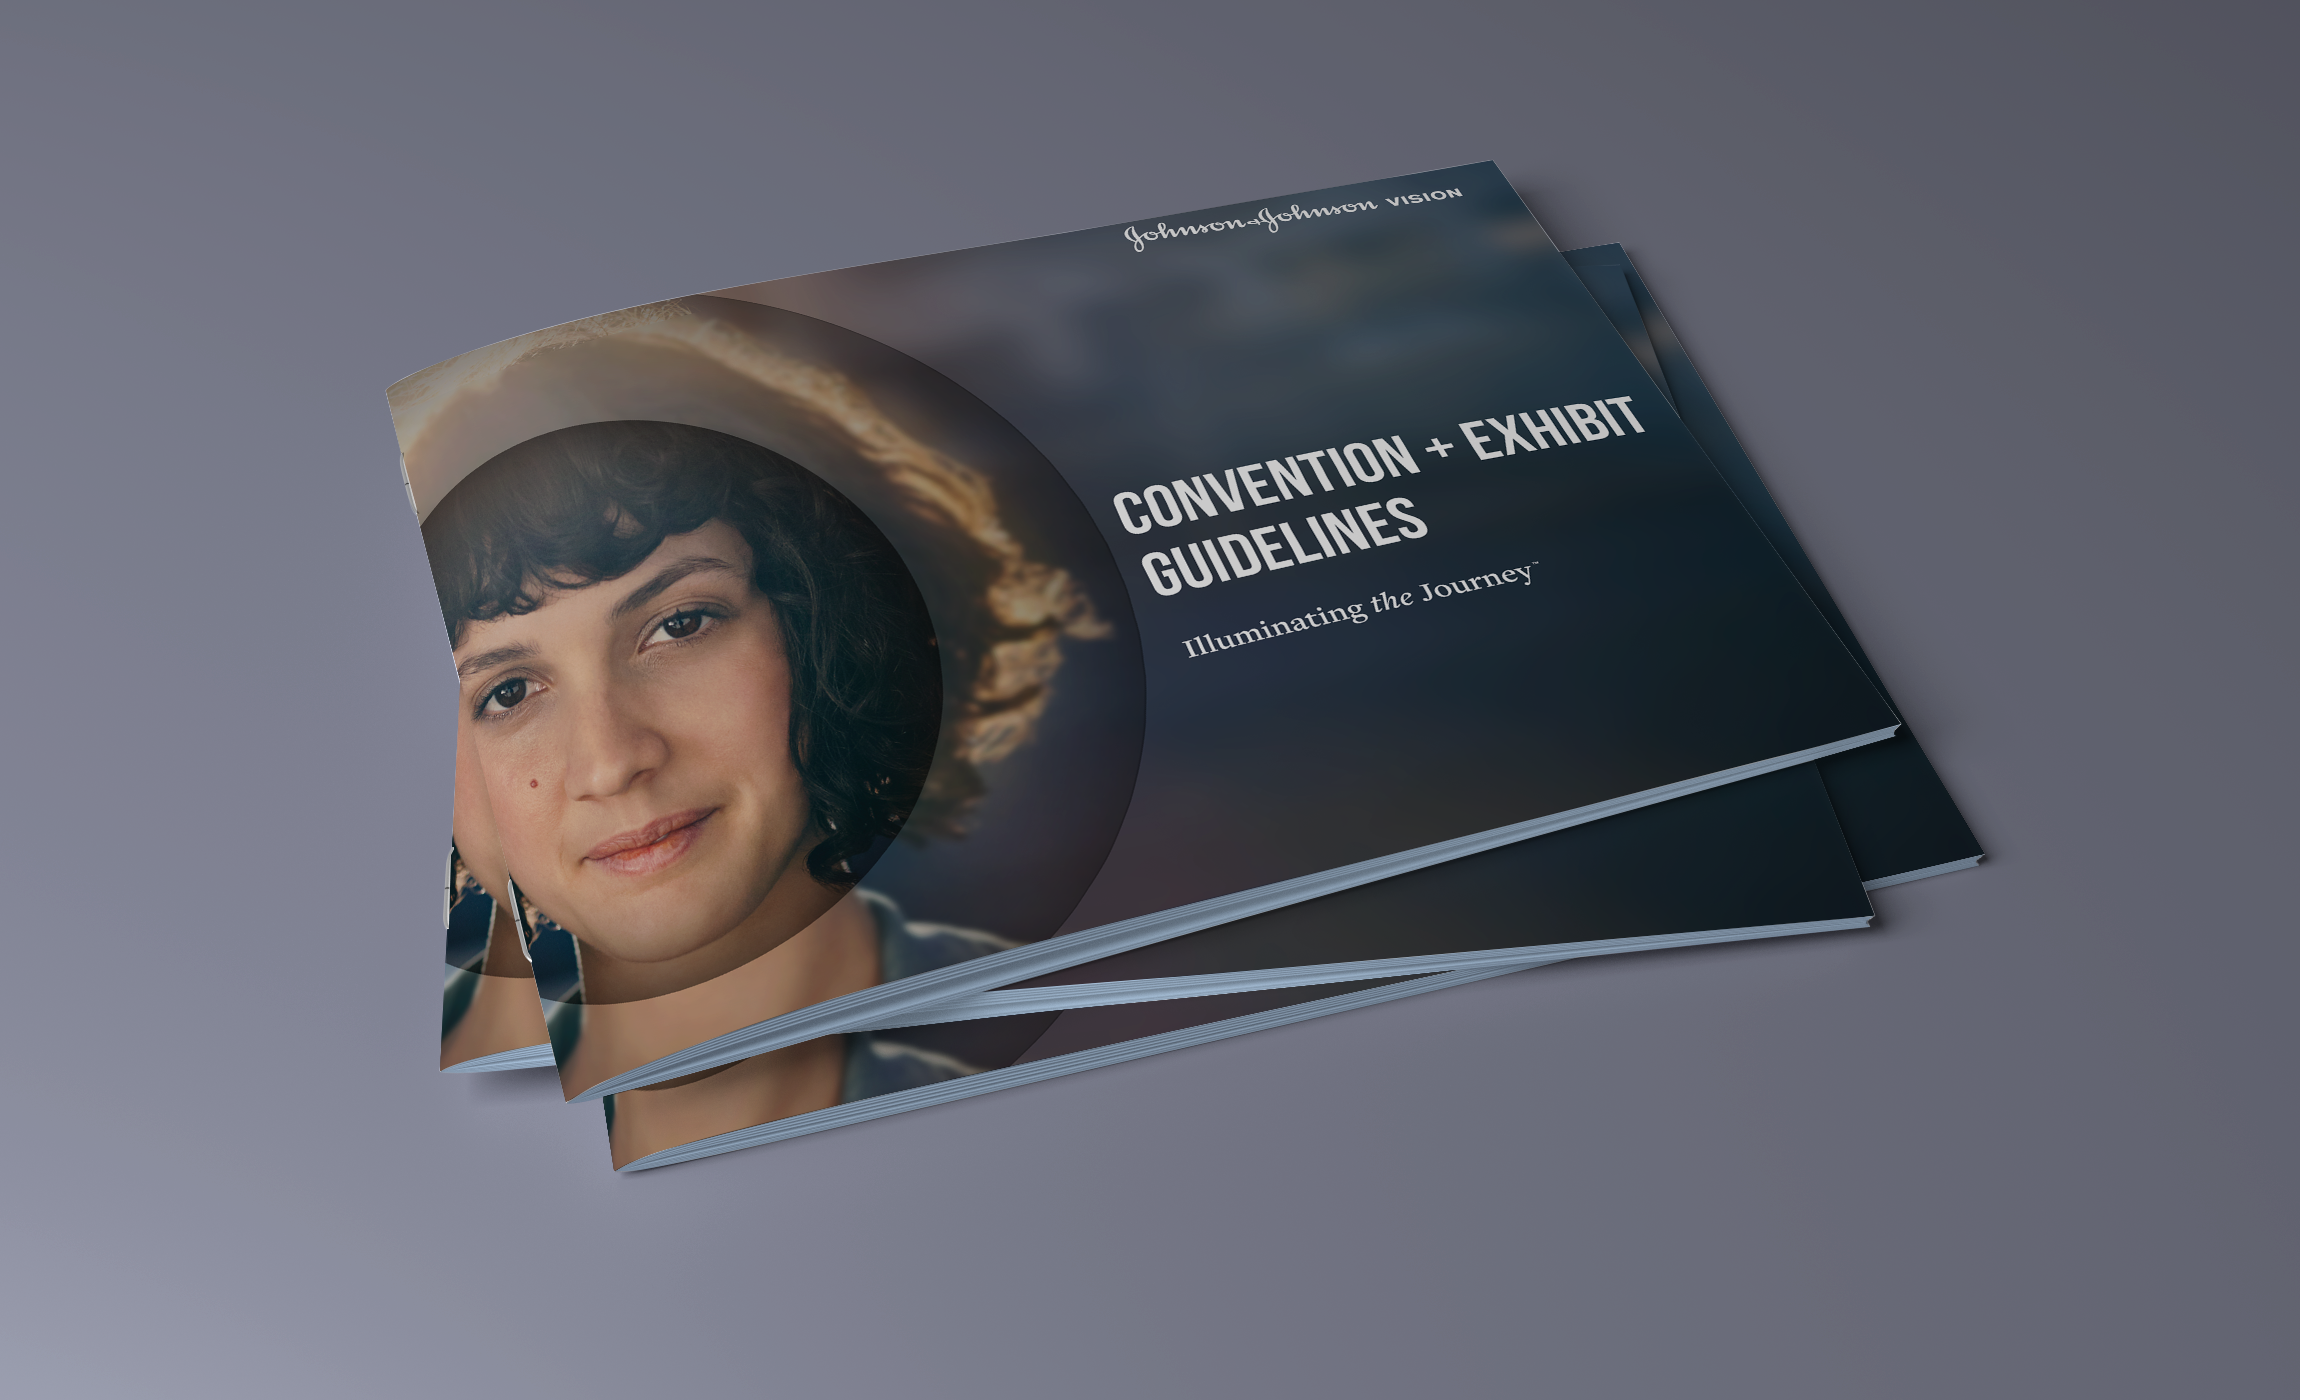 COnvention-Guide-MockUp-Cover.png